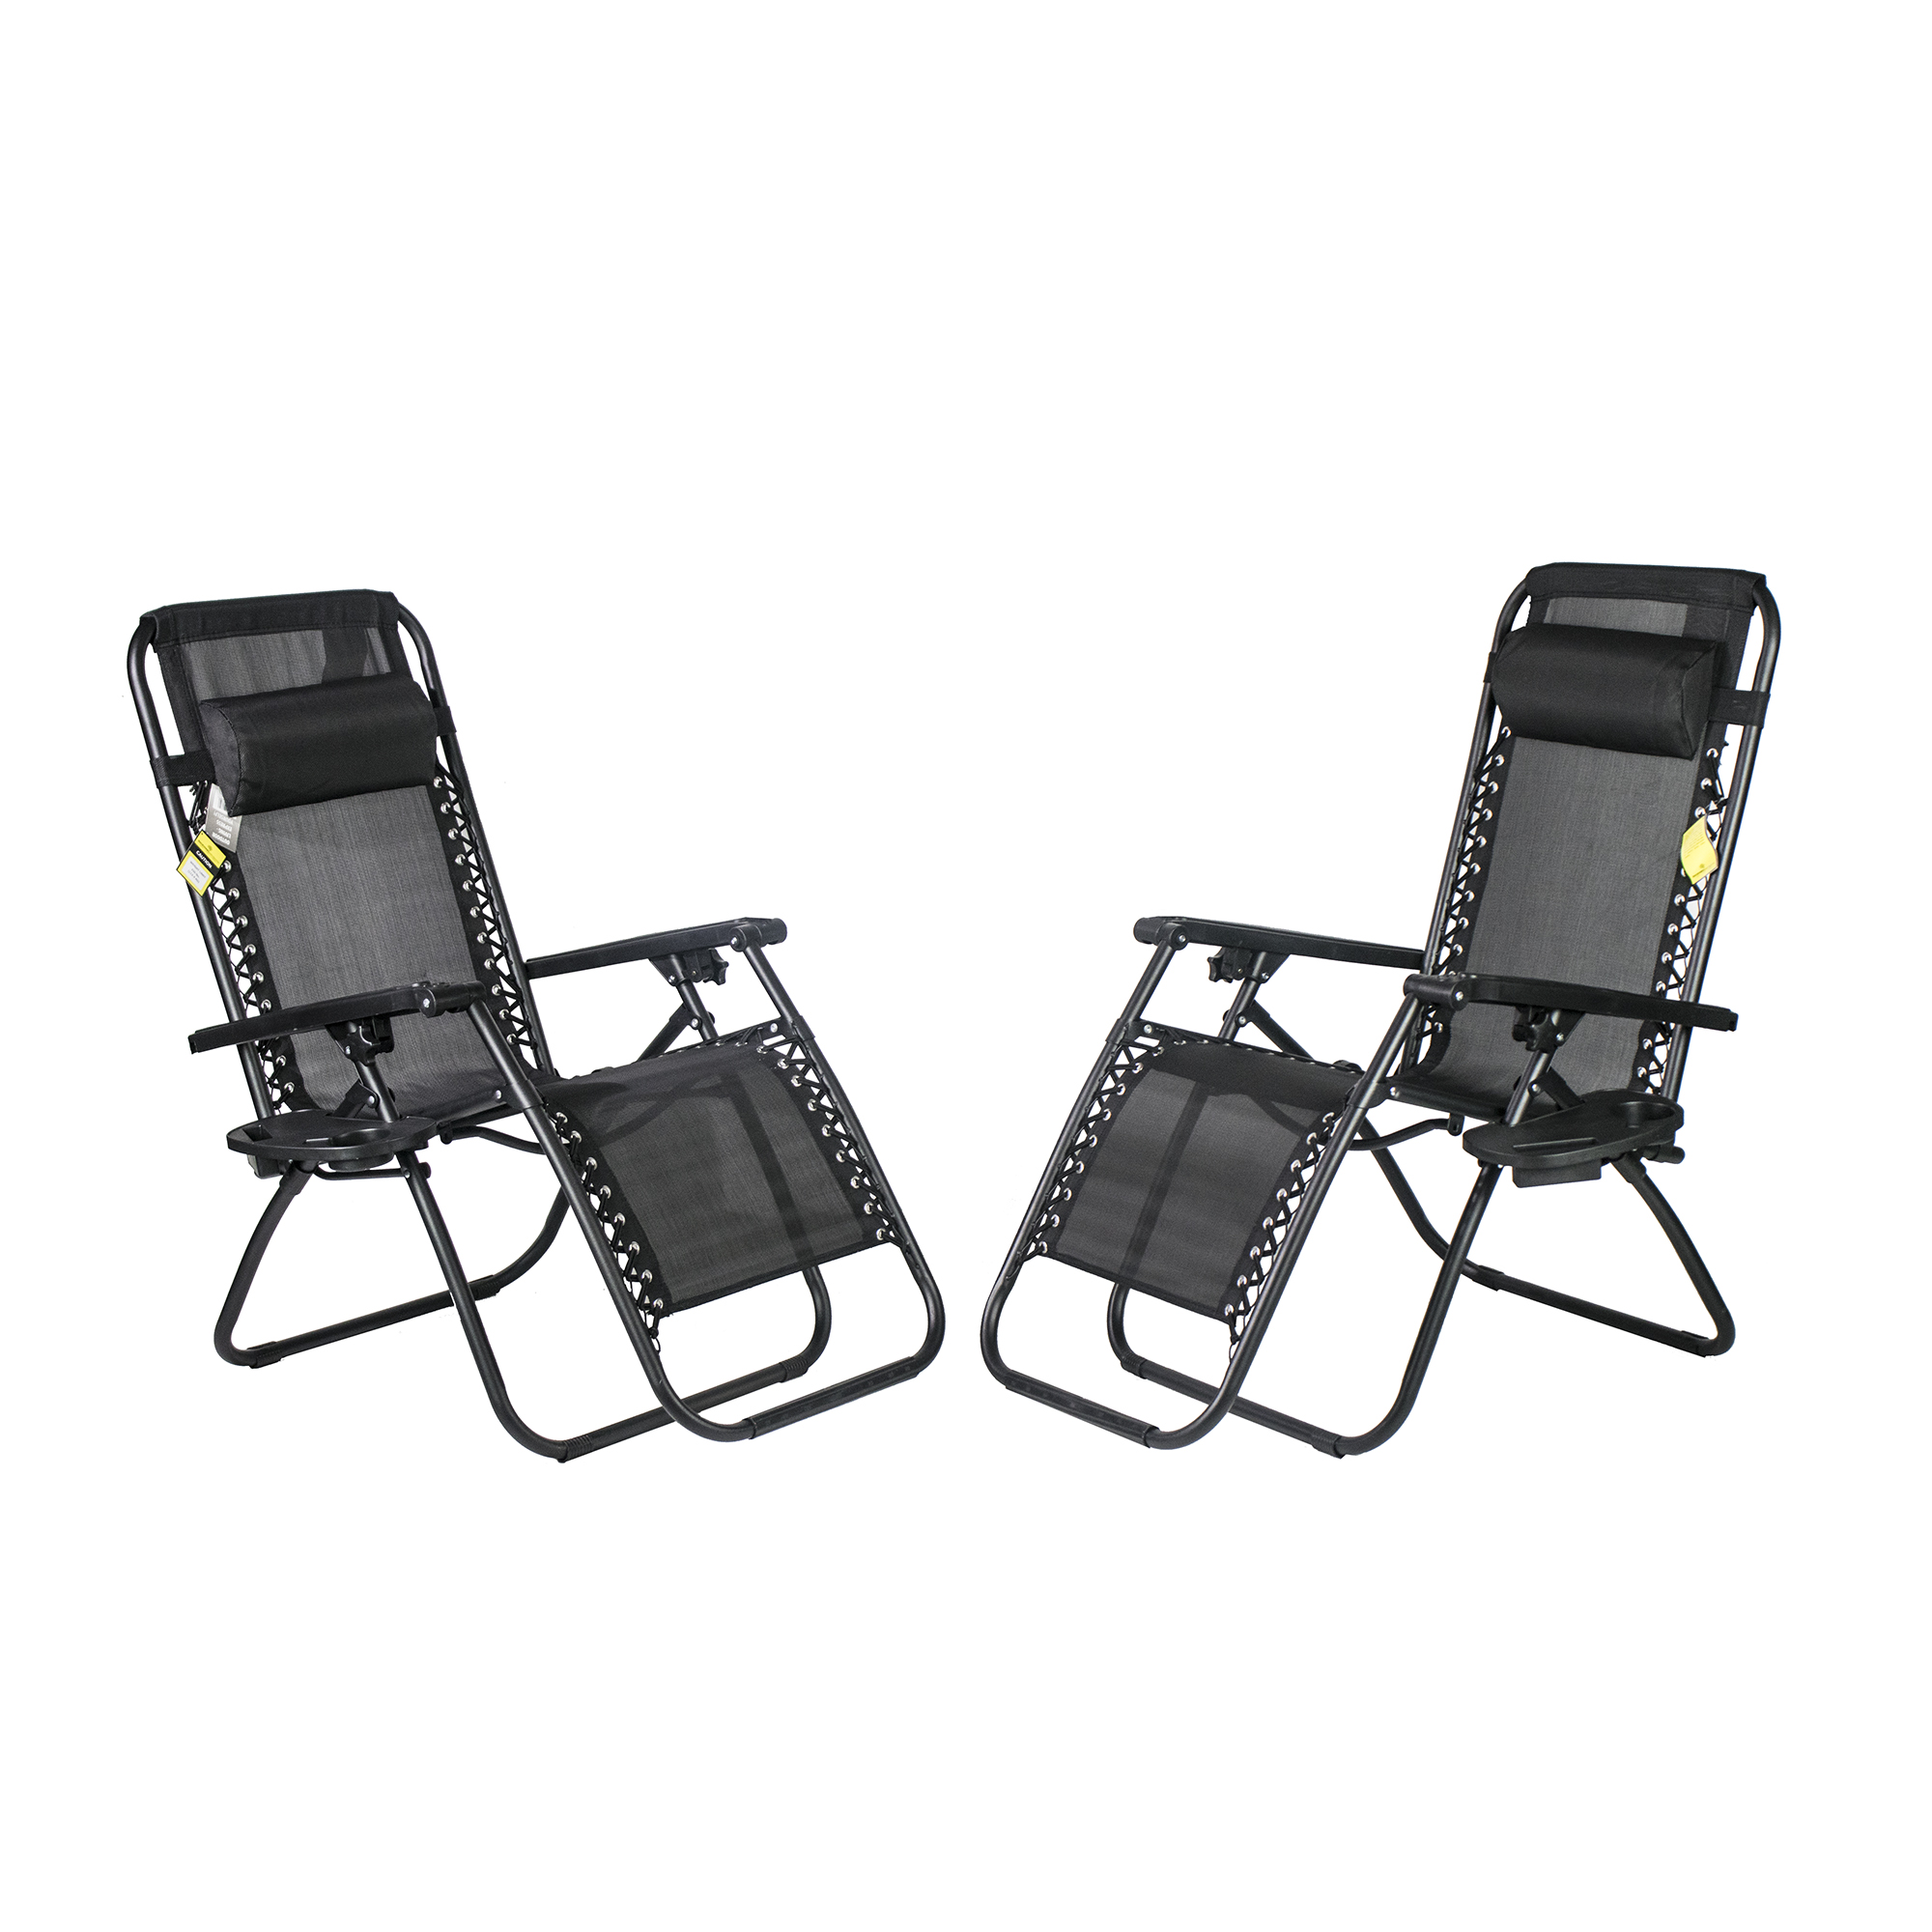 Backyard Expressions Zero Gravity Chair w/ Pillow and Cupholder - 2 Pack